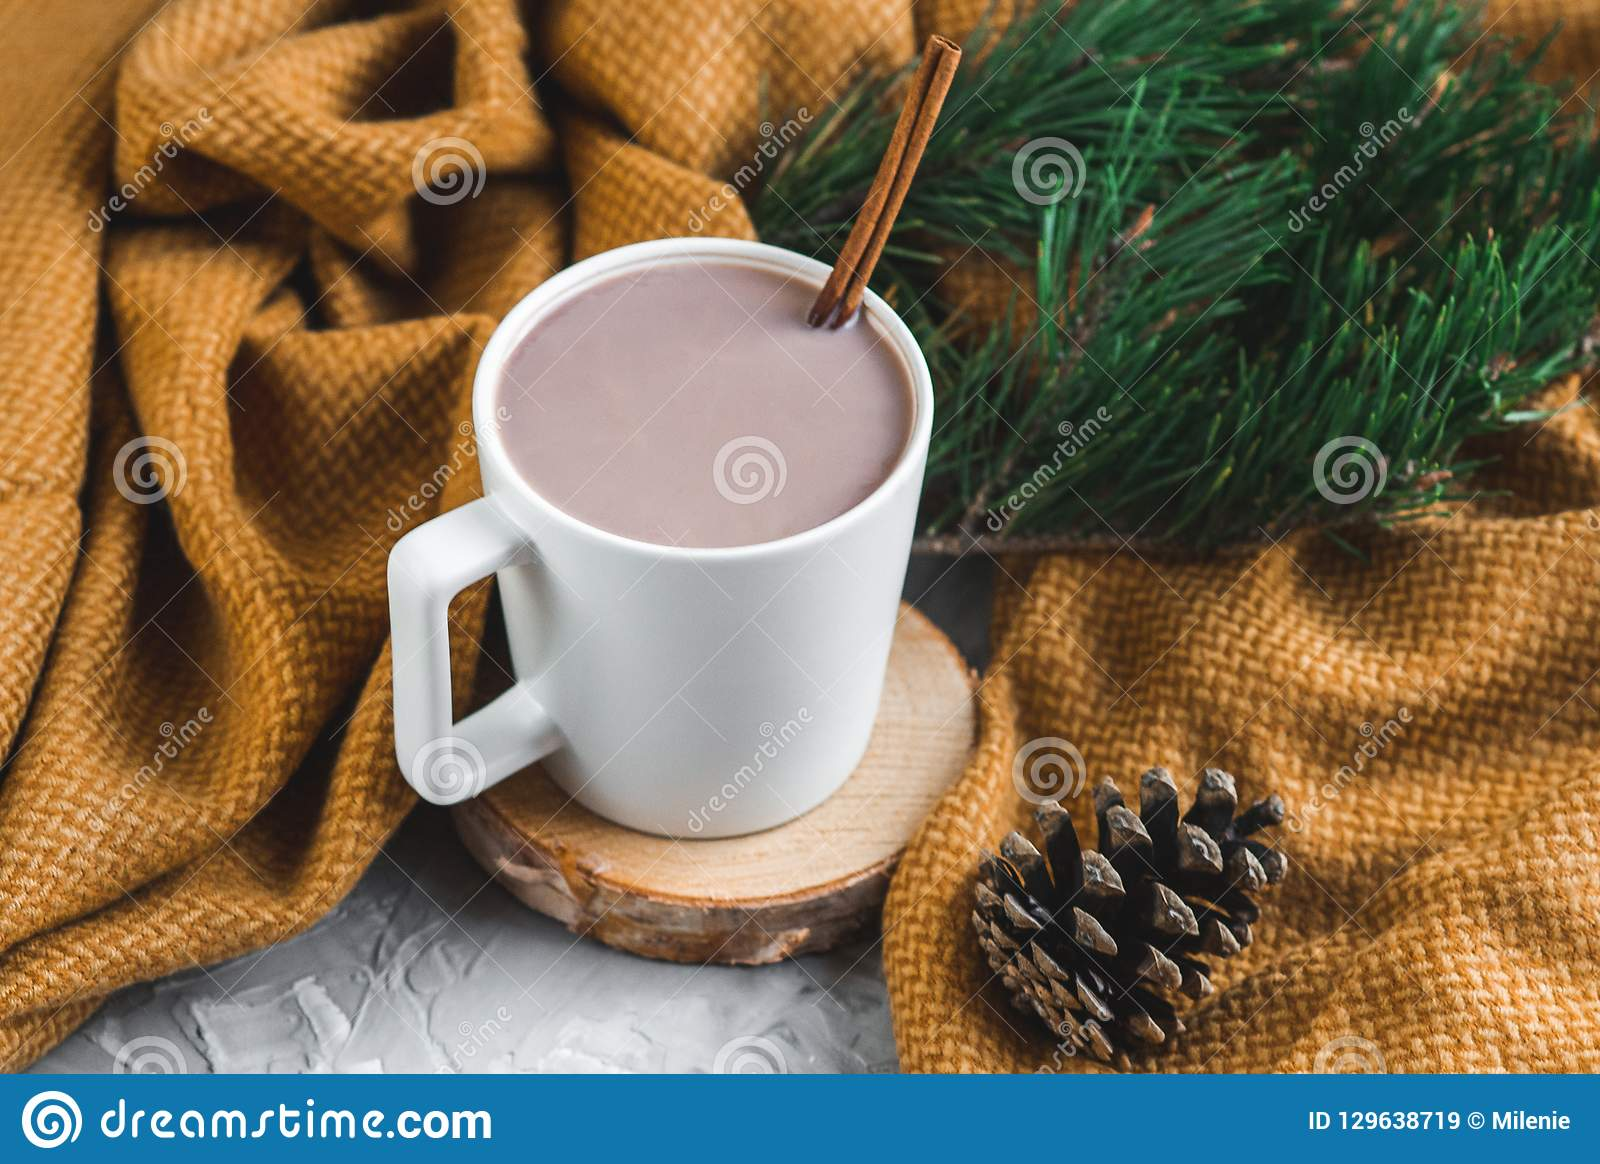 White Cup of Hot Chocolate, Yellow Plaid, Cone, Pine Branch, Fir Tree, Gray Background, Autumn Concept, Winter, Cosiness, Instagr